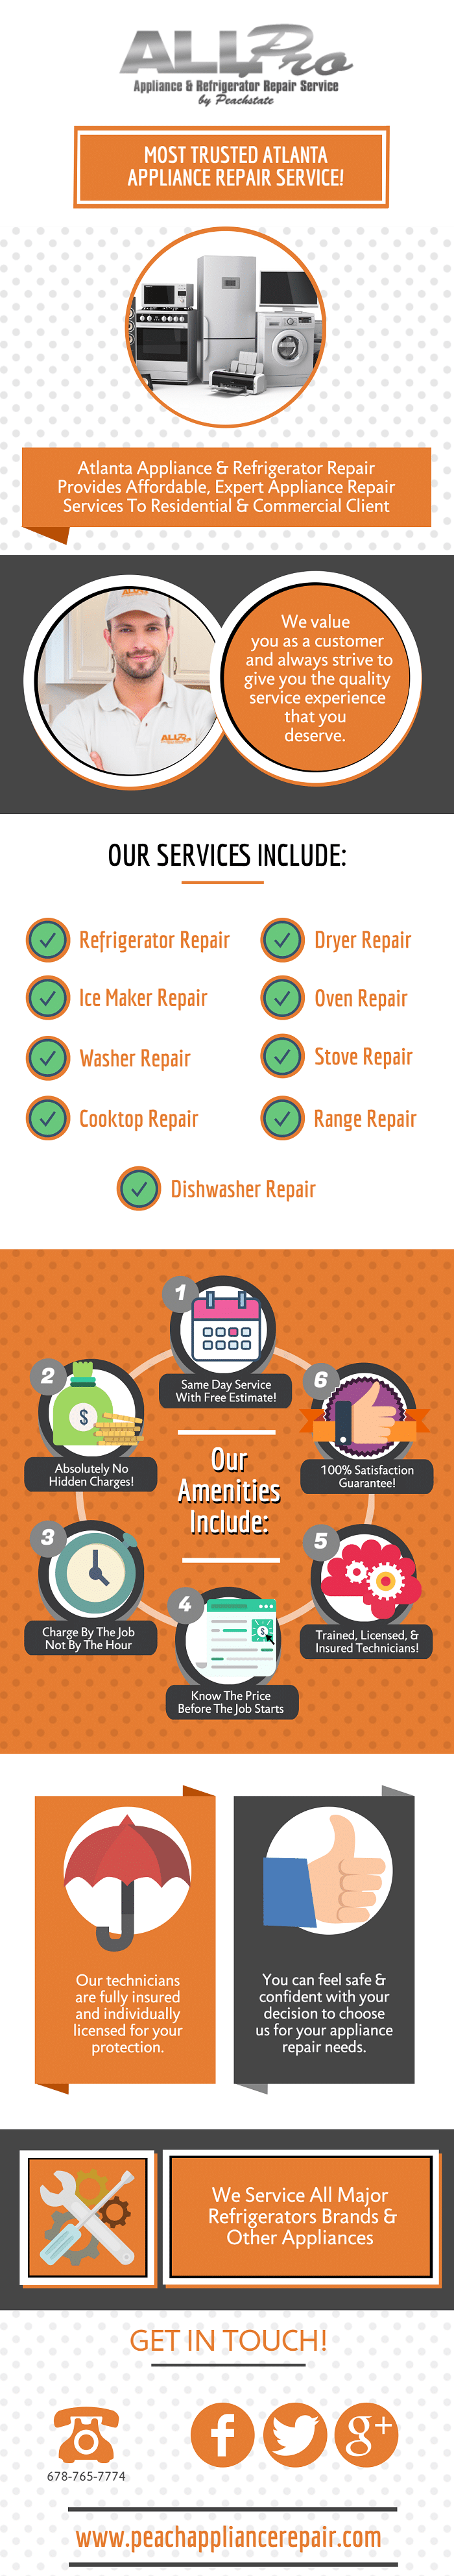 infographic All Pro Appliance and Refrigerator Repair Service Metro Atlanta, Most Trusted Atlanta Appliance Repair Service